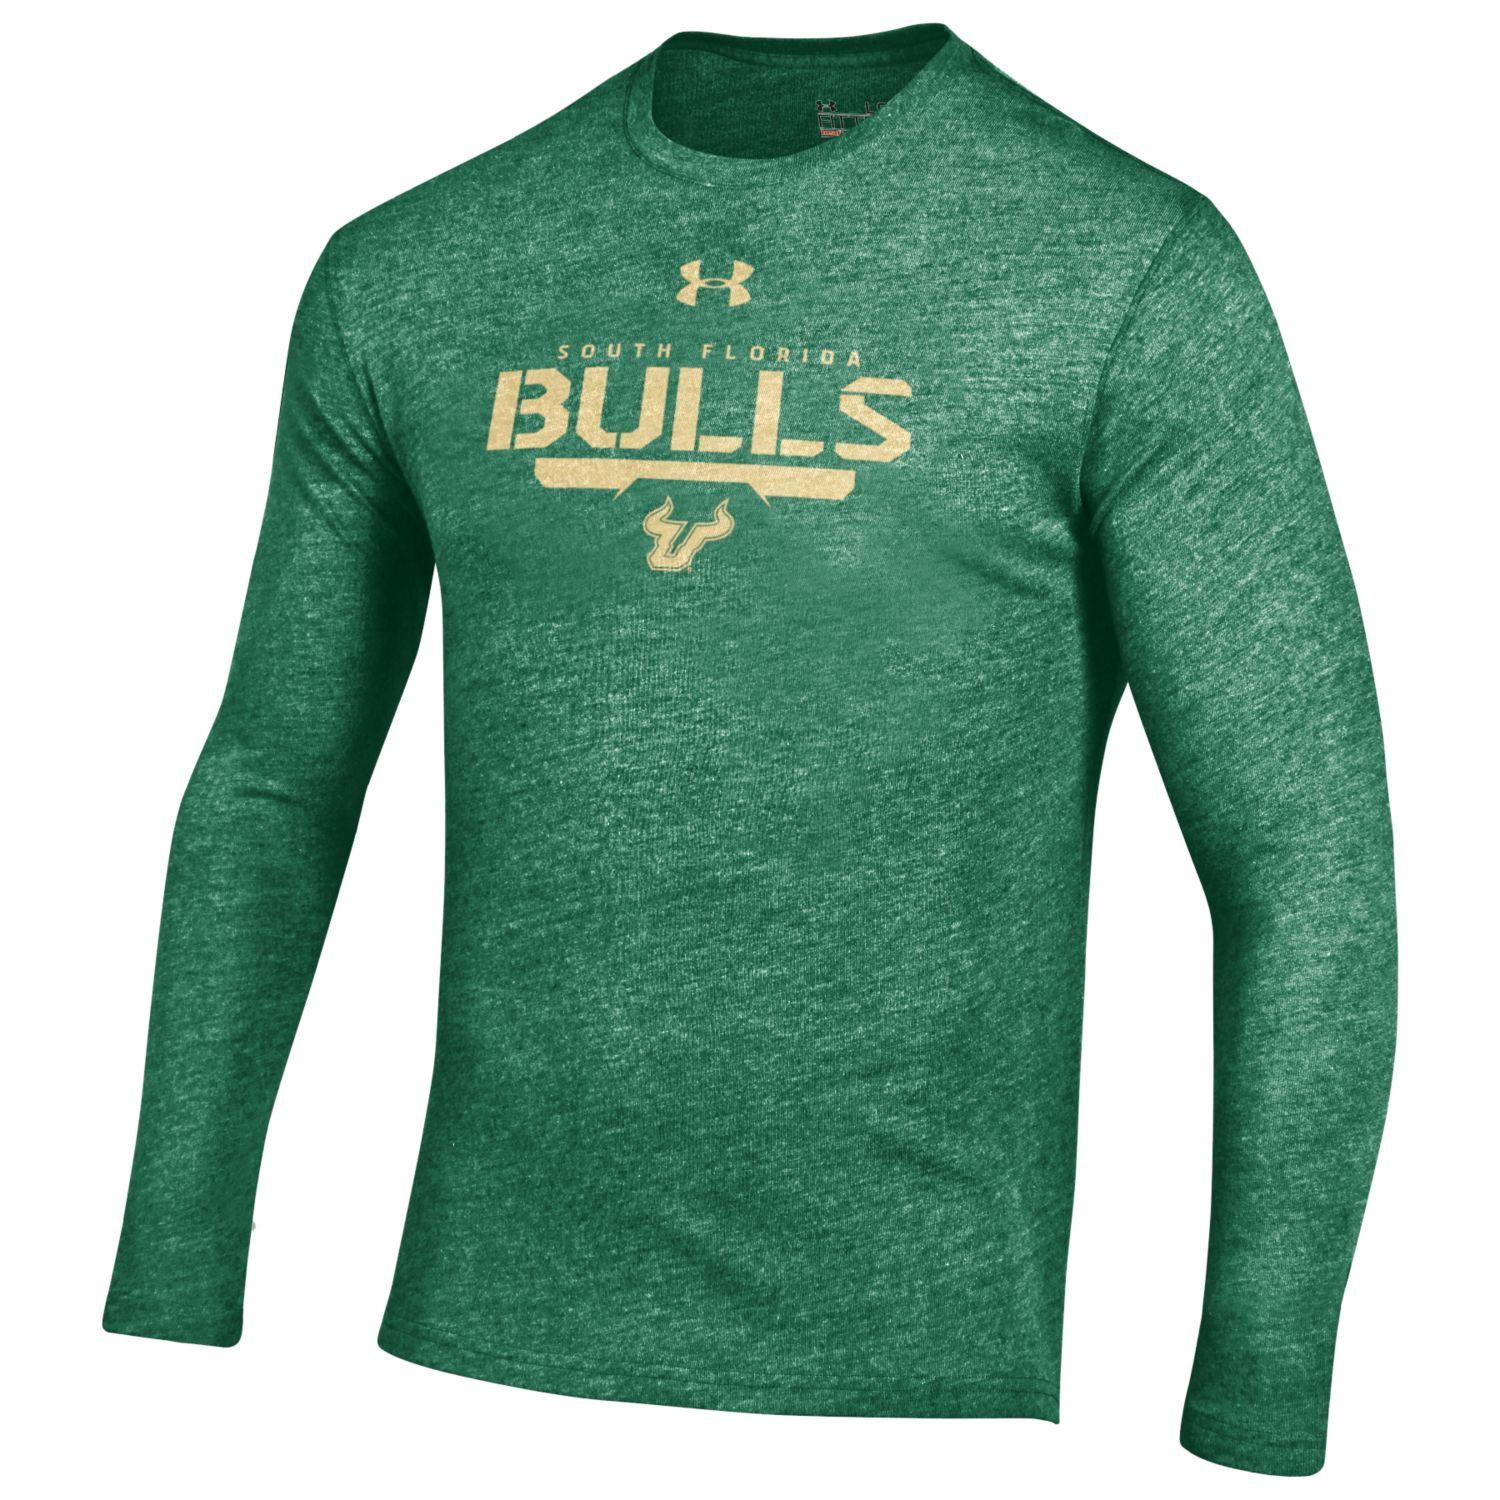 "South Florida Bulls Under Armour NCAA ""Safety Blitz"" Tri-Blend L/S Shirt"